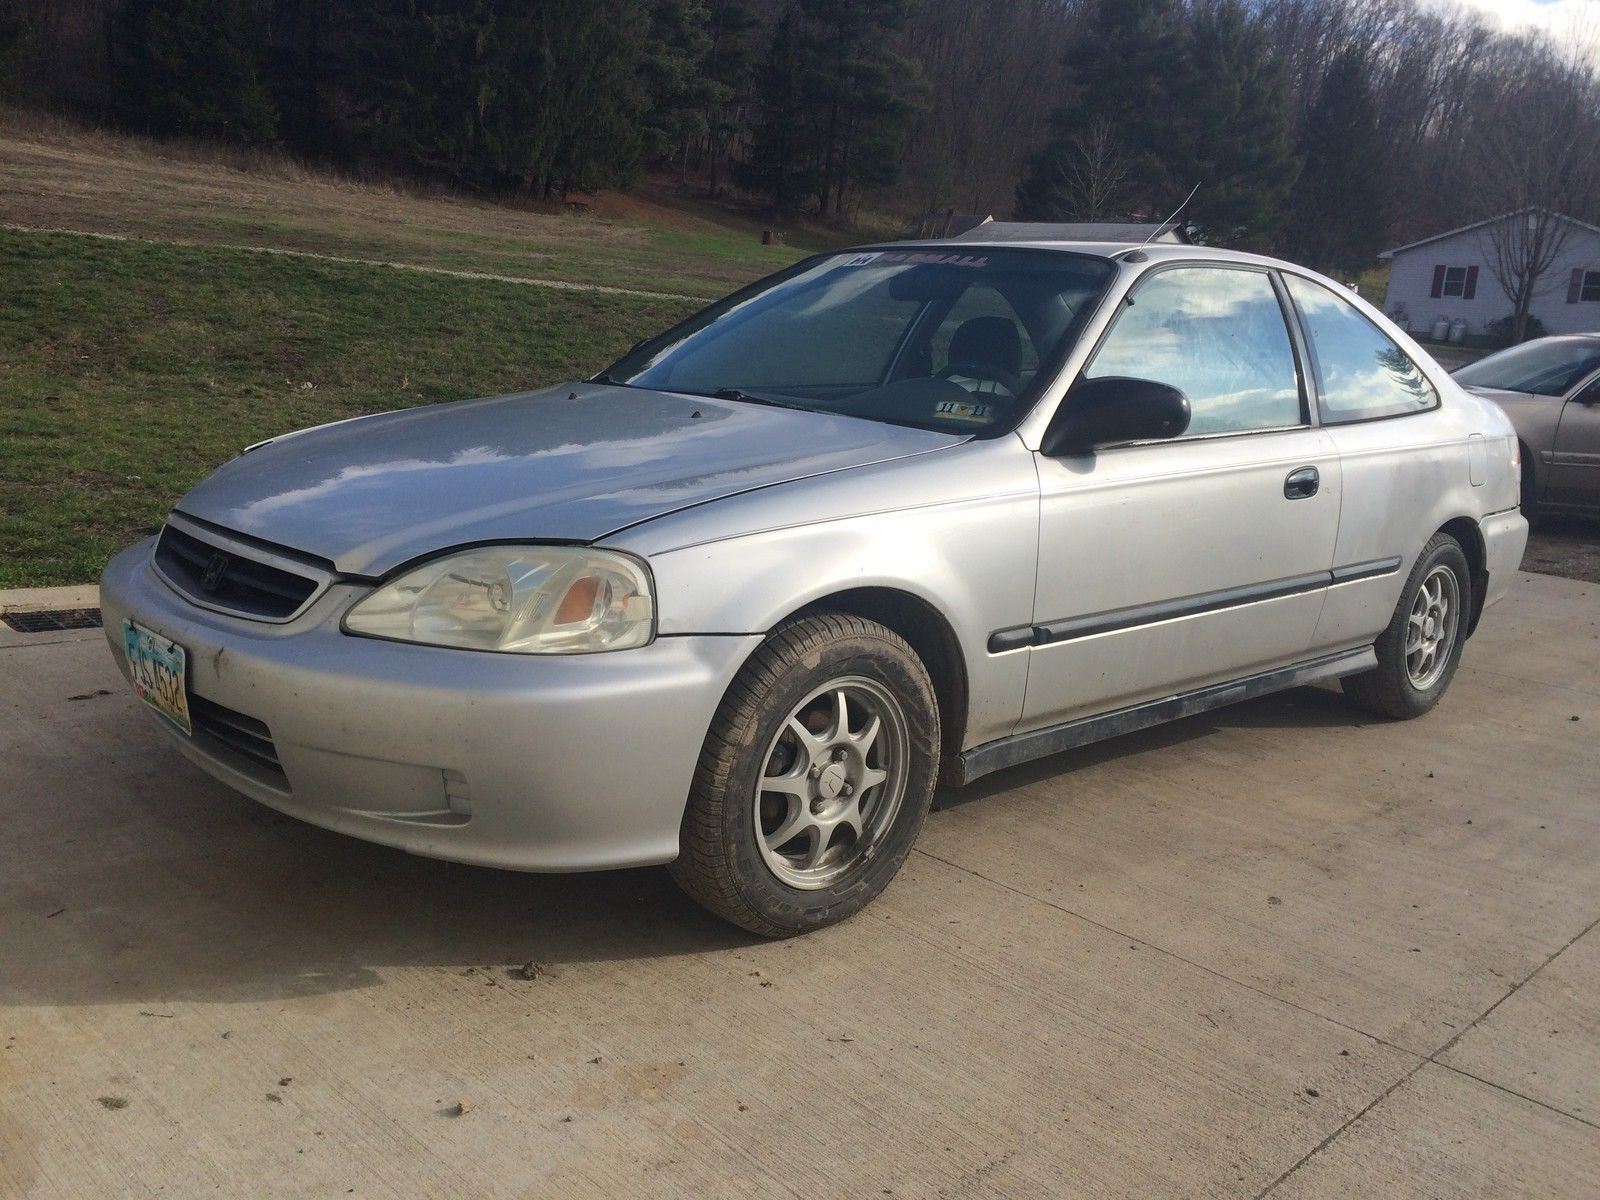 2000 Honda Civic Hx 5spd For Sale 2000 Honda Civic Honda Civic Civic